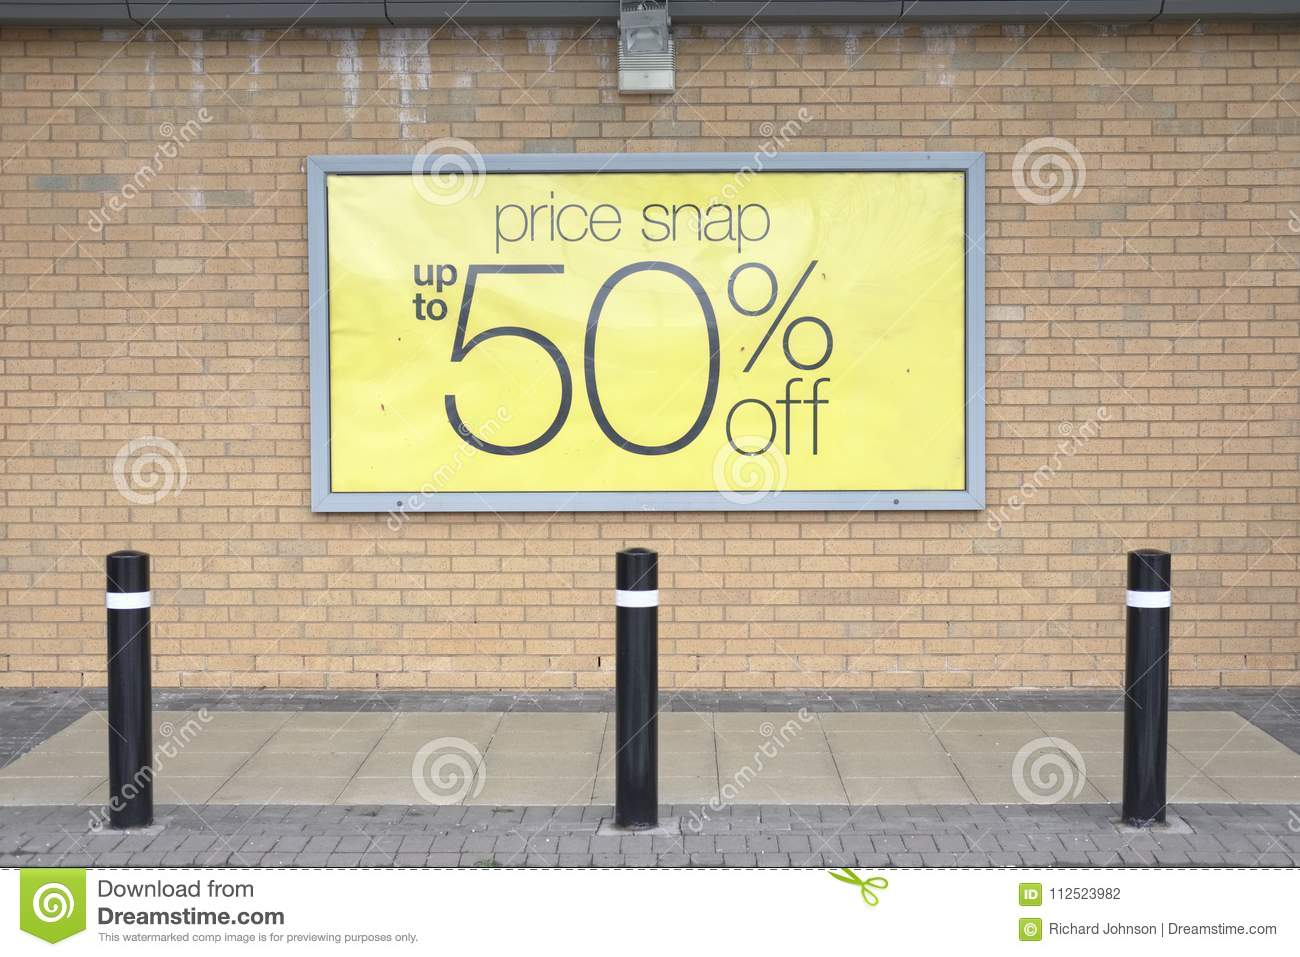 Superior Half Price Sale Sign On Brick Wall Yellow Outside Shop Store Shopping Mall  Season Bargins For Shoppers